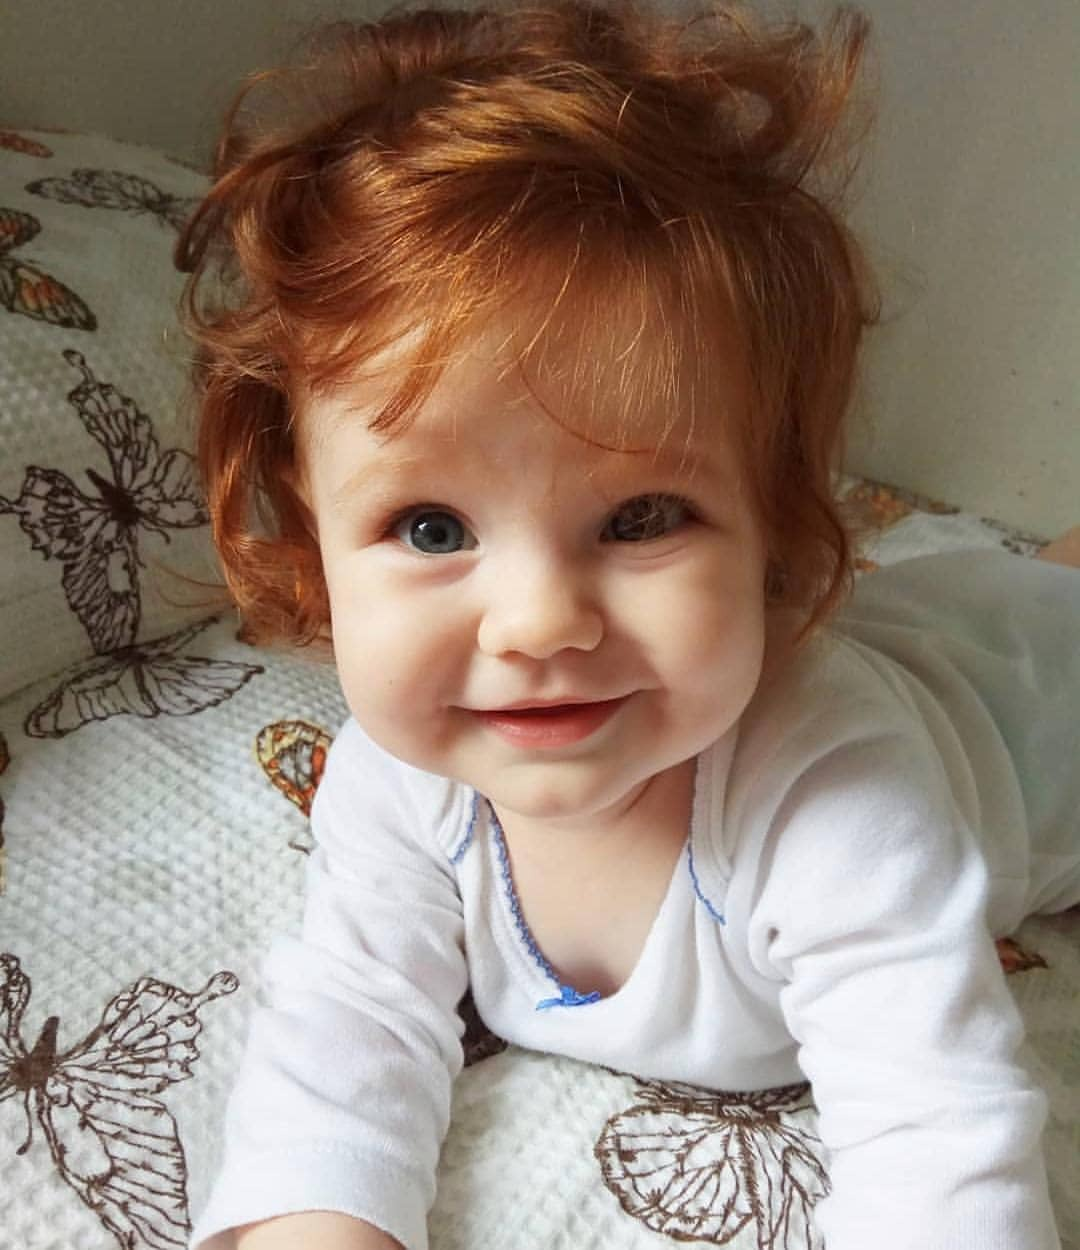 Redhead Pale Skin Green Eyes And Baby Image 6214647 On Favim Com